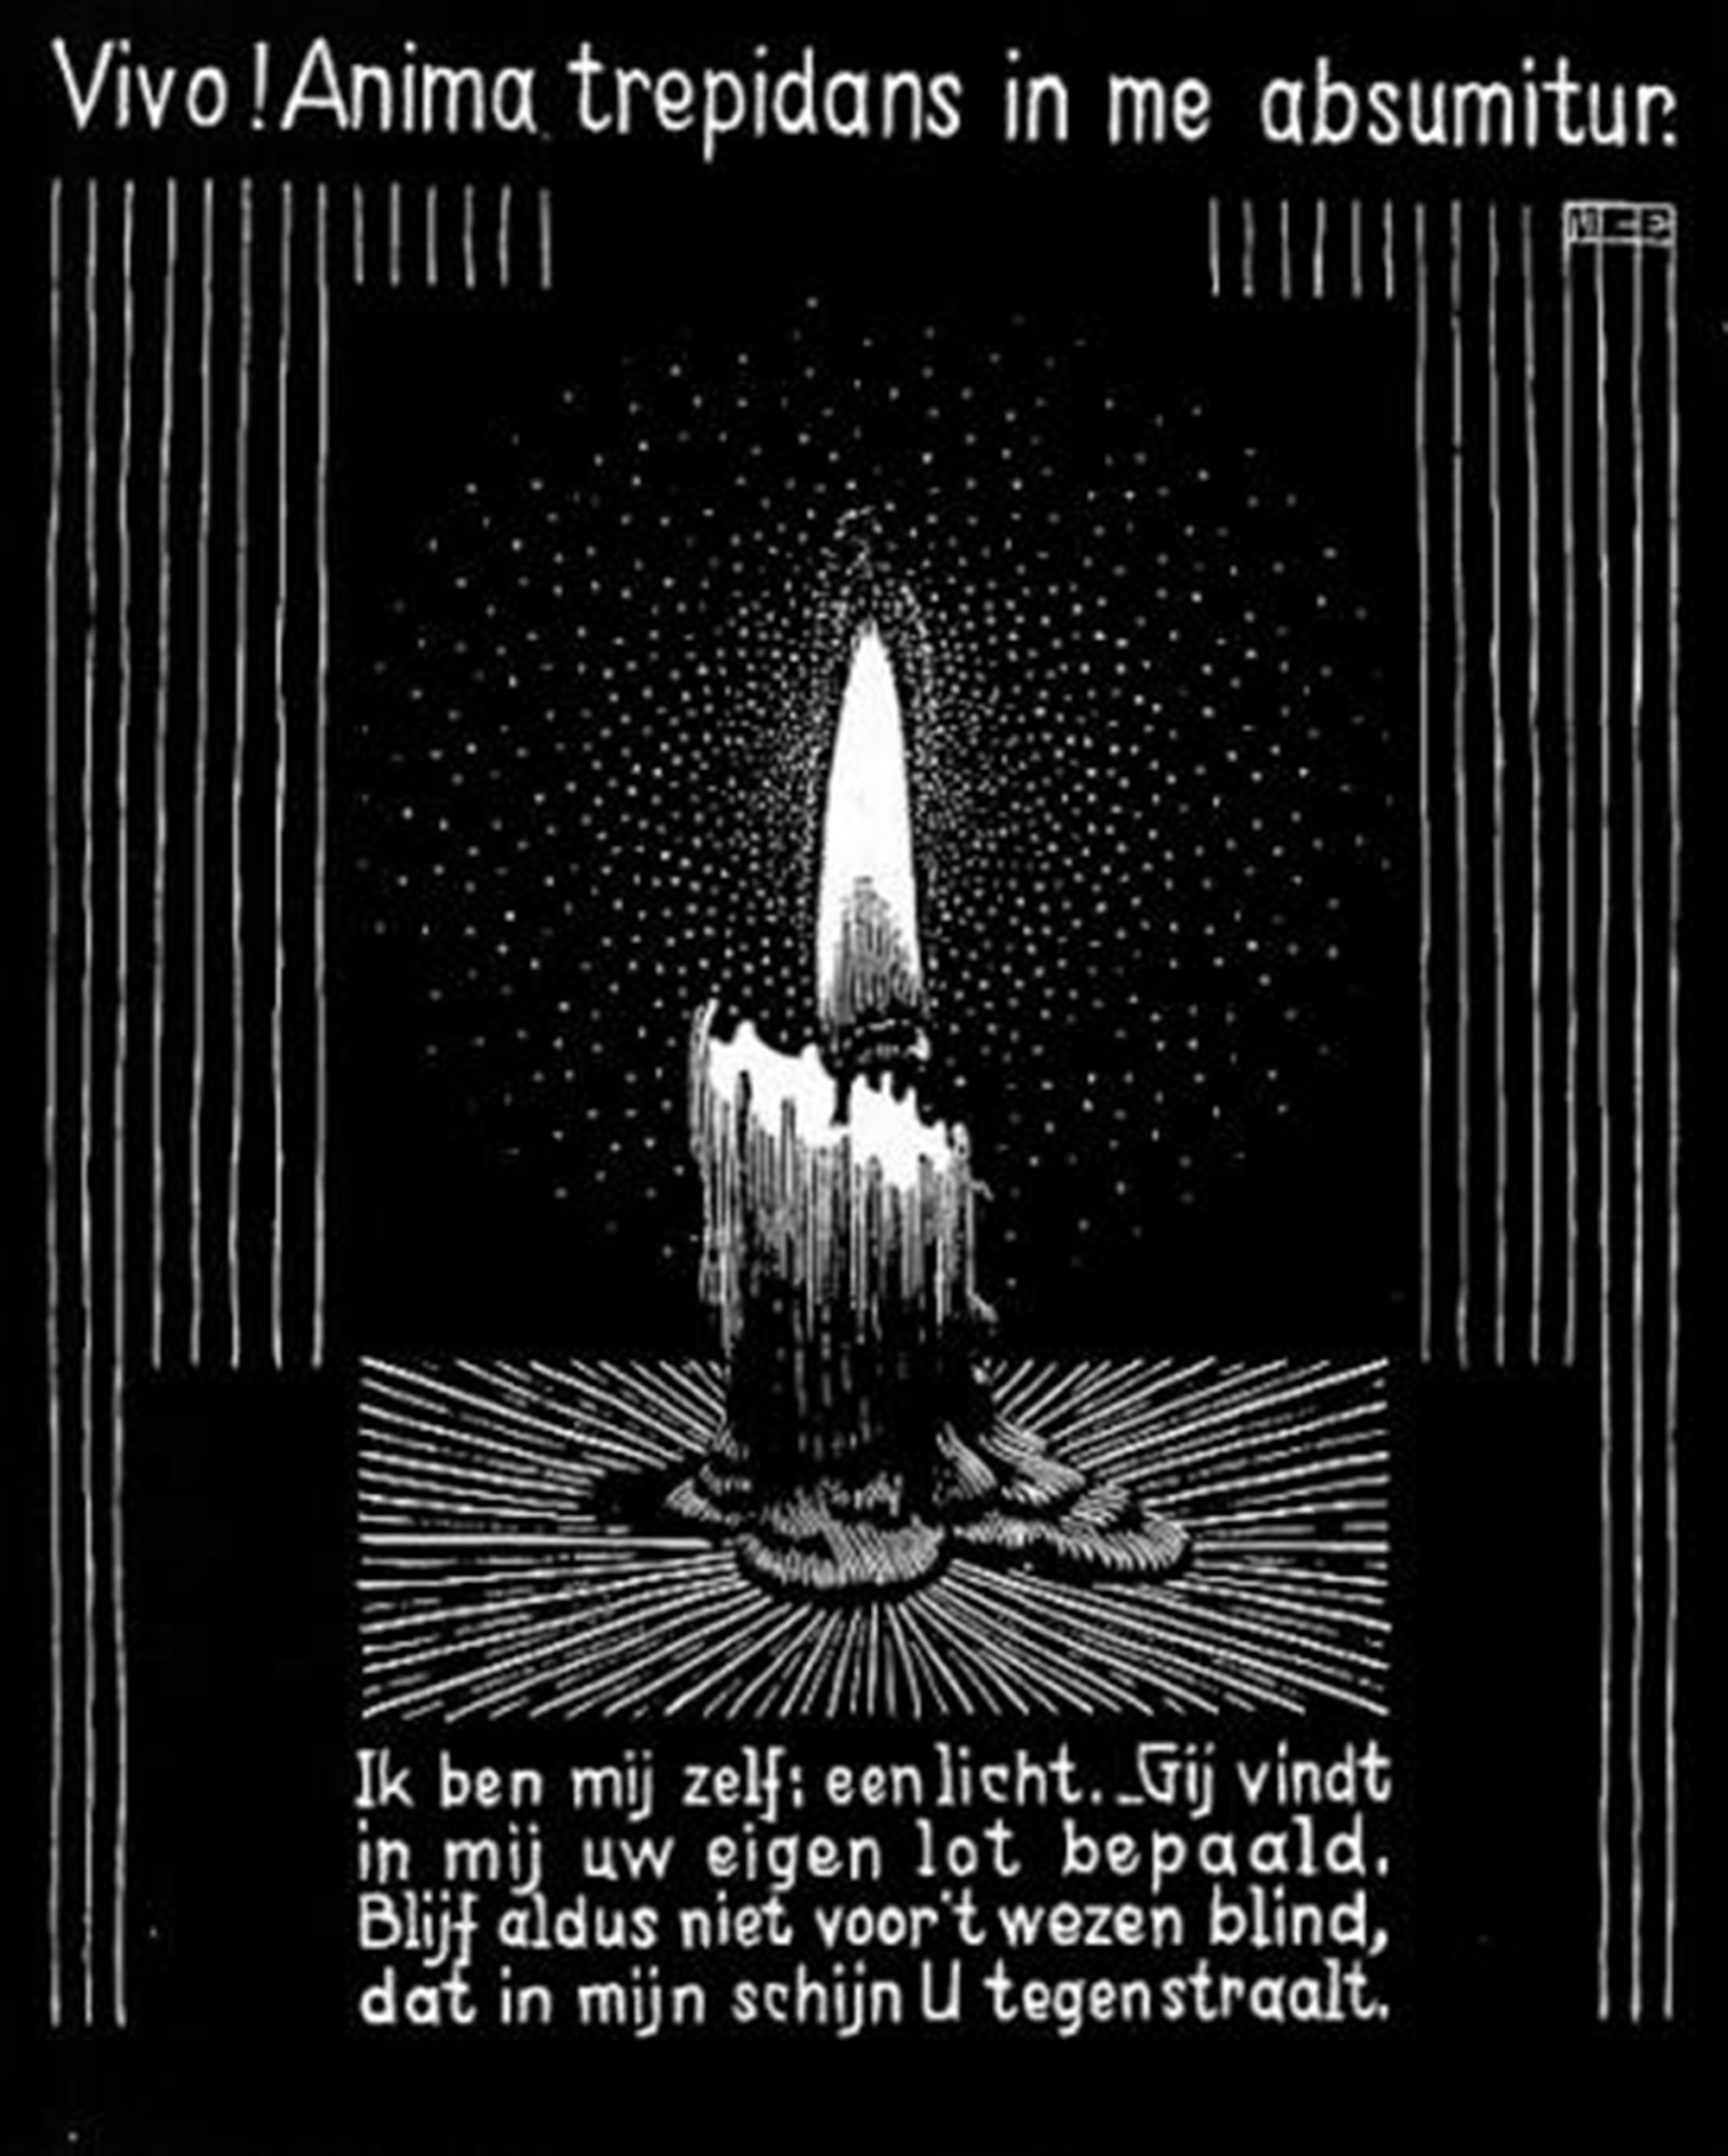 Emblemata - Candle Flame by M.C. Escher